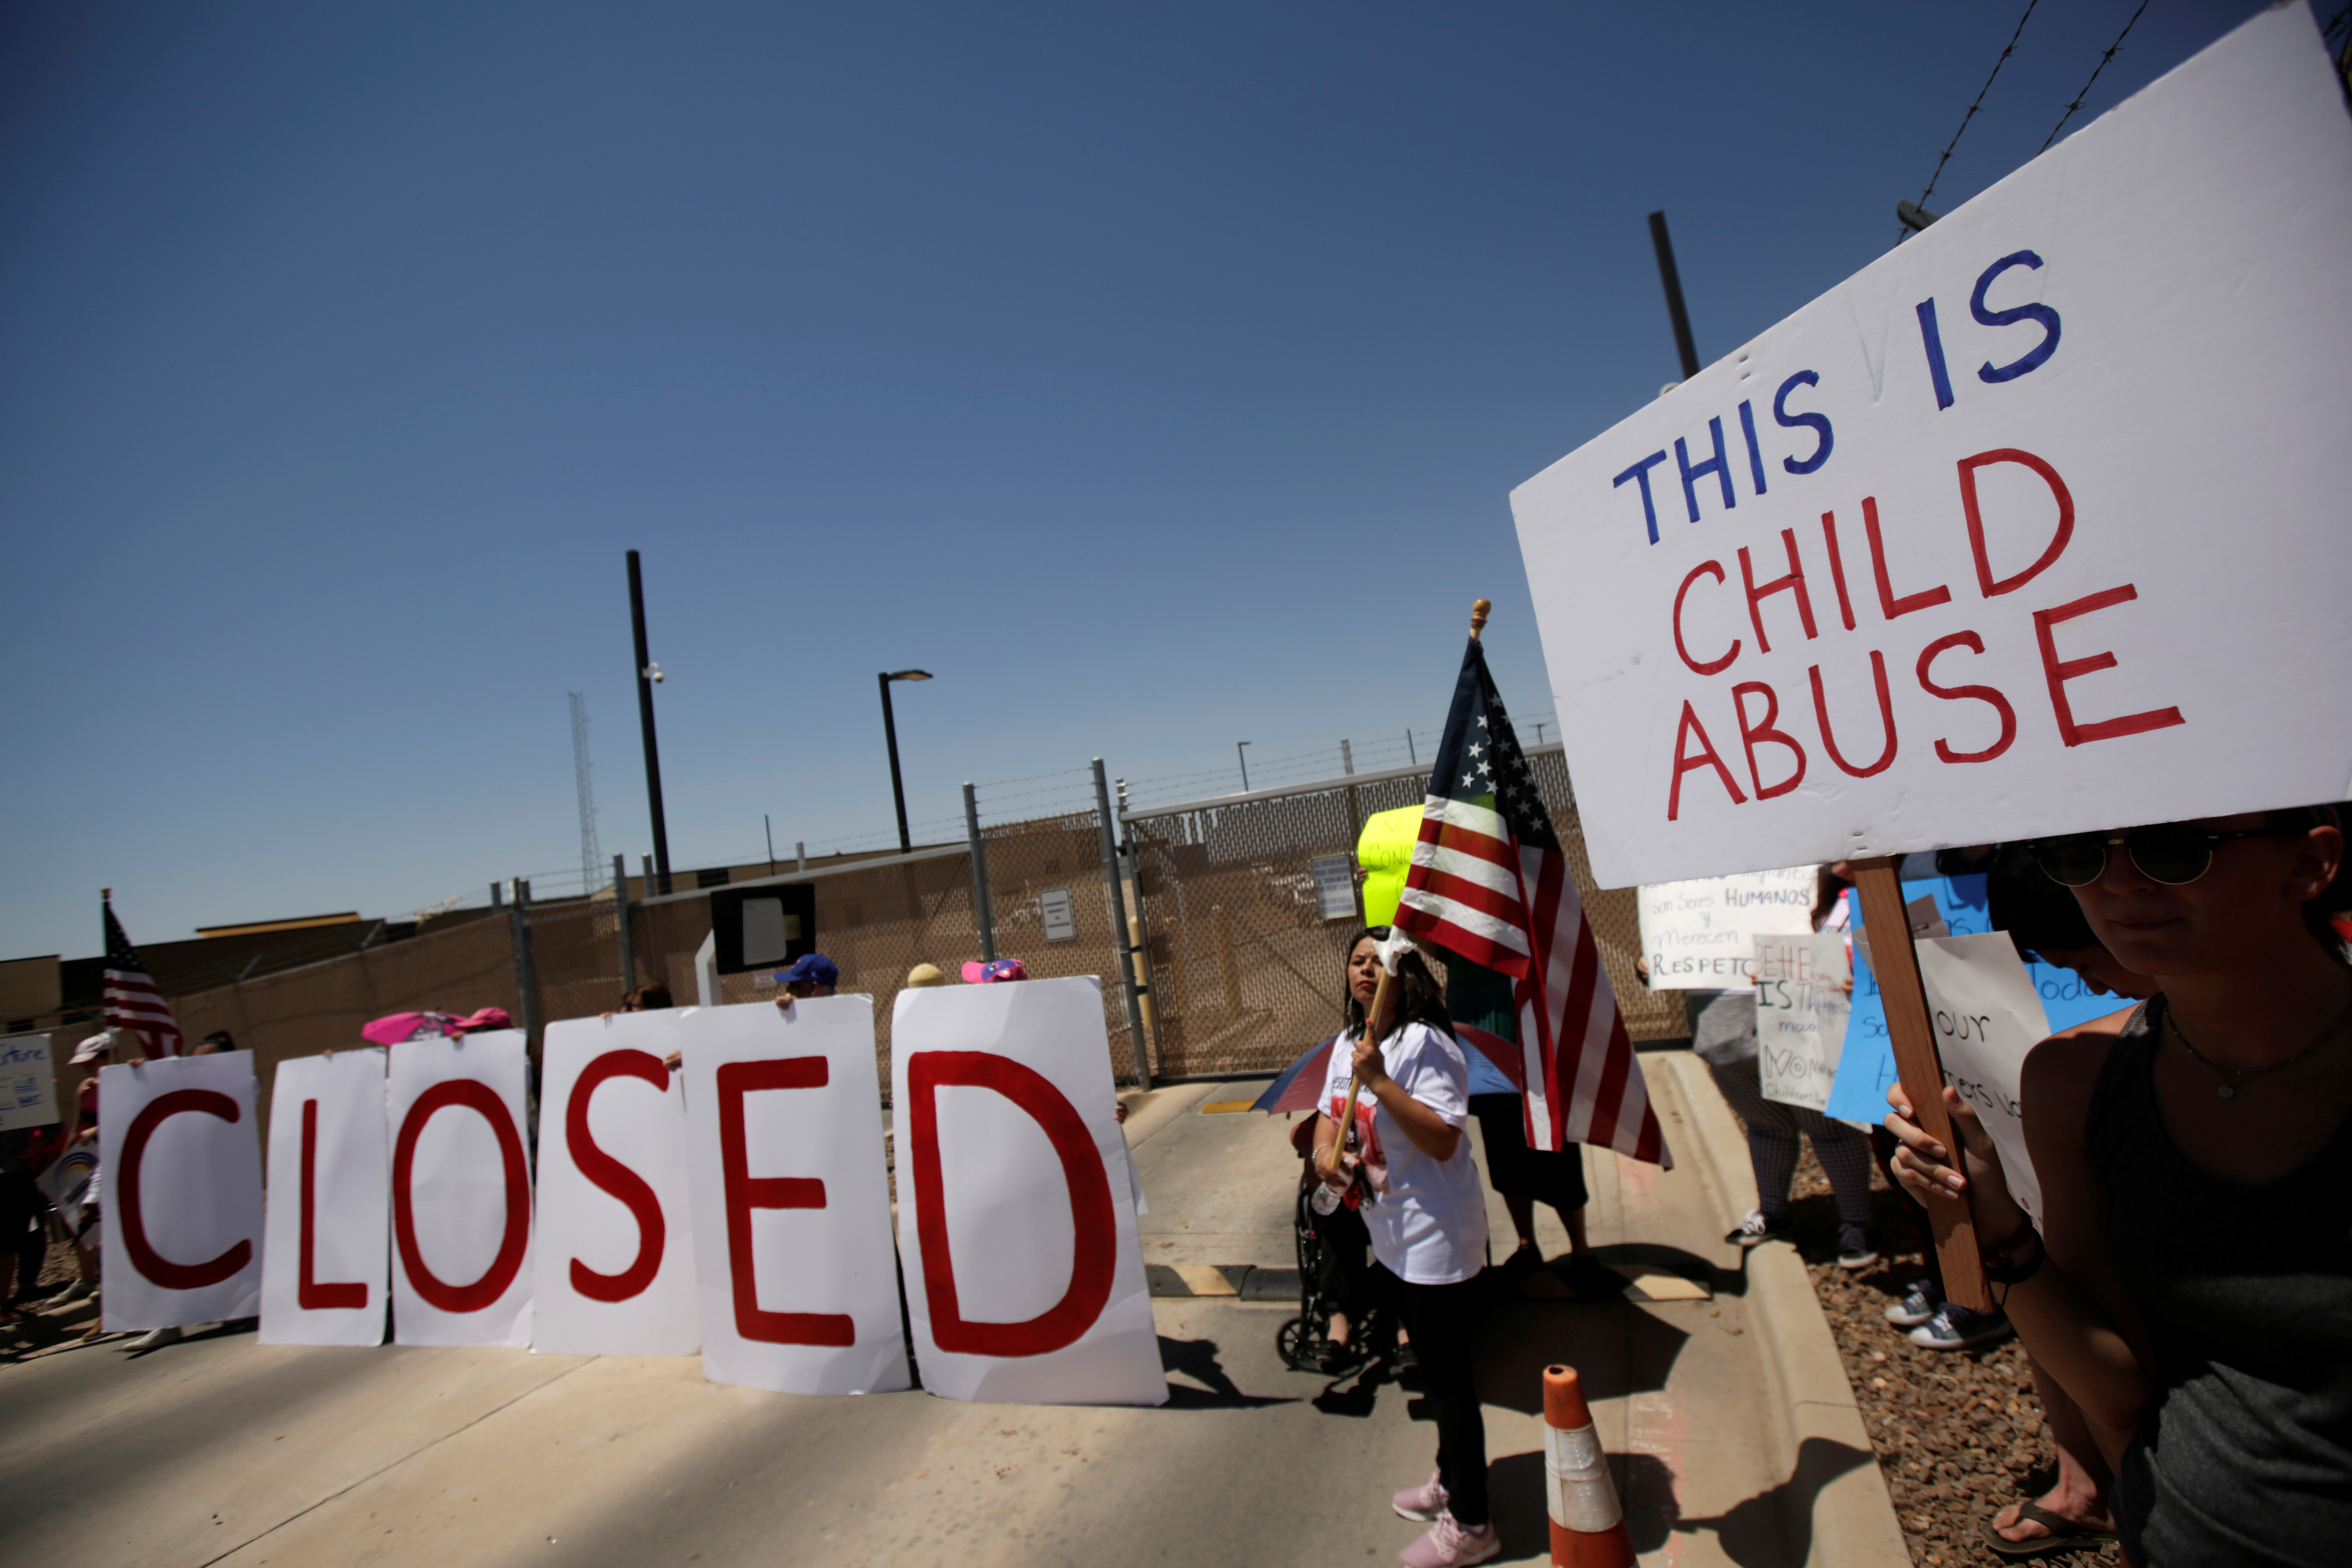 Activists hold a protest against the treatment and conditions of children in immigration detention outside U.S. Customs and Border Protection's Border Patrol station facilities in Clint, Texas